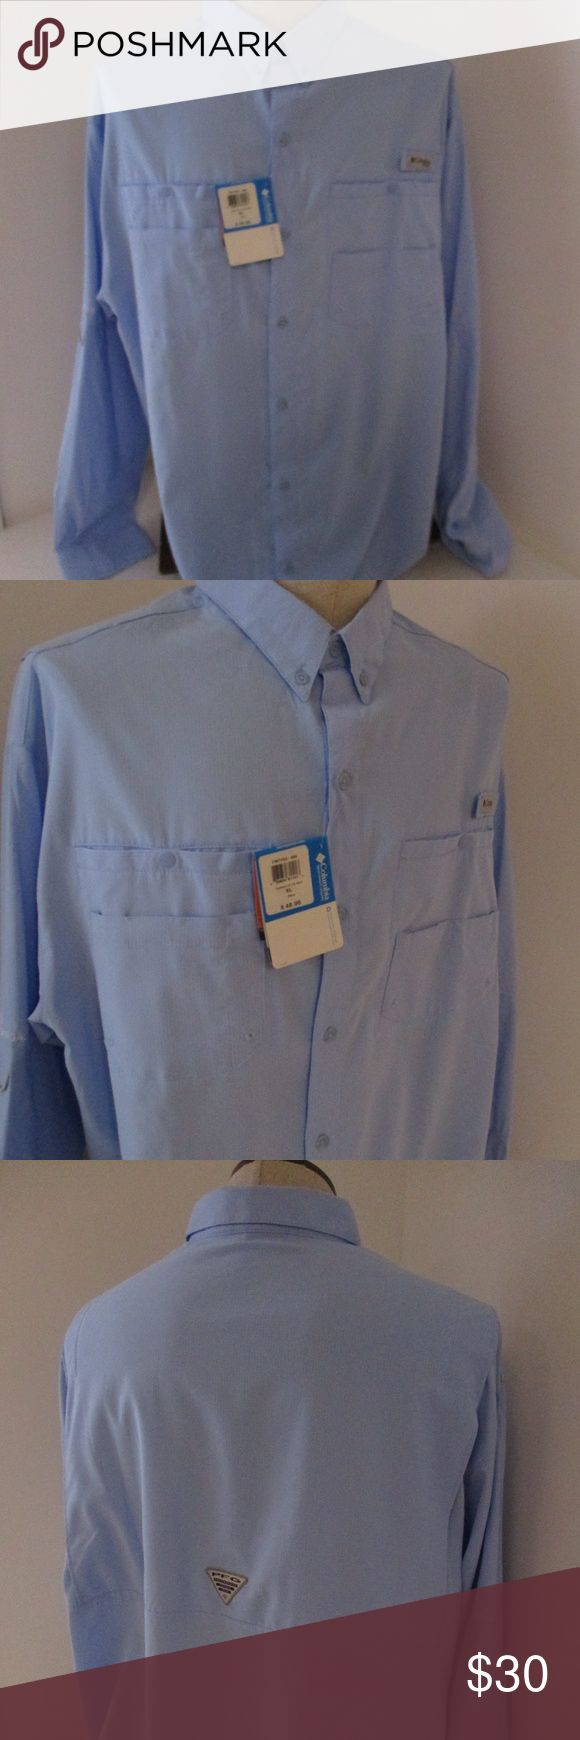 "Columbia PFG Tamiami Blue Sleeve Shirt XL NWT Brand new Columbia PFG shirt in size XL     Style is Tamiami in a pretty shade of blue      Omni shade 40 sun protection     100% polyester     New condition with tag attached     Retail price $48     Chest- 26.5""  Length- 32"" Columbia Shirts Casual Button Down Shirts"